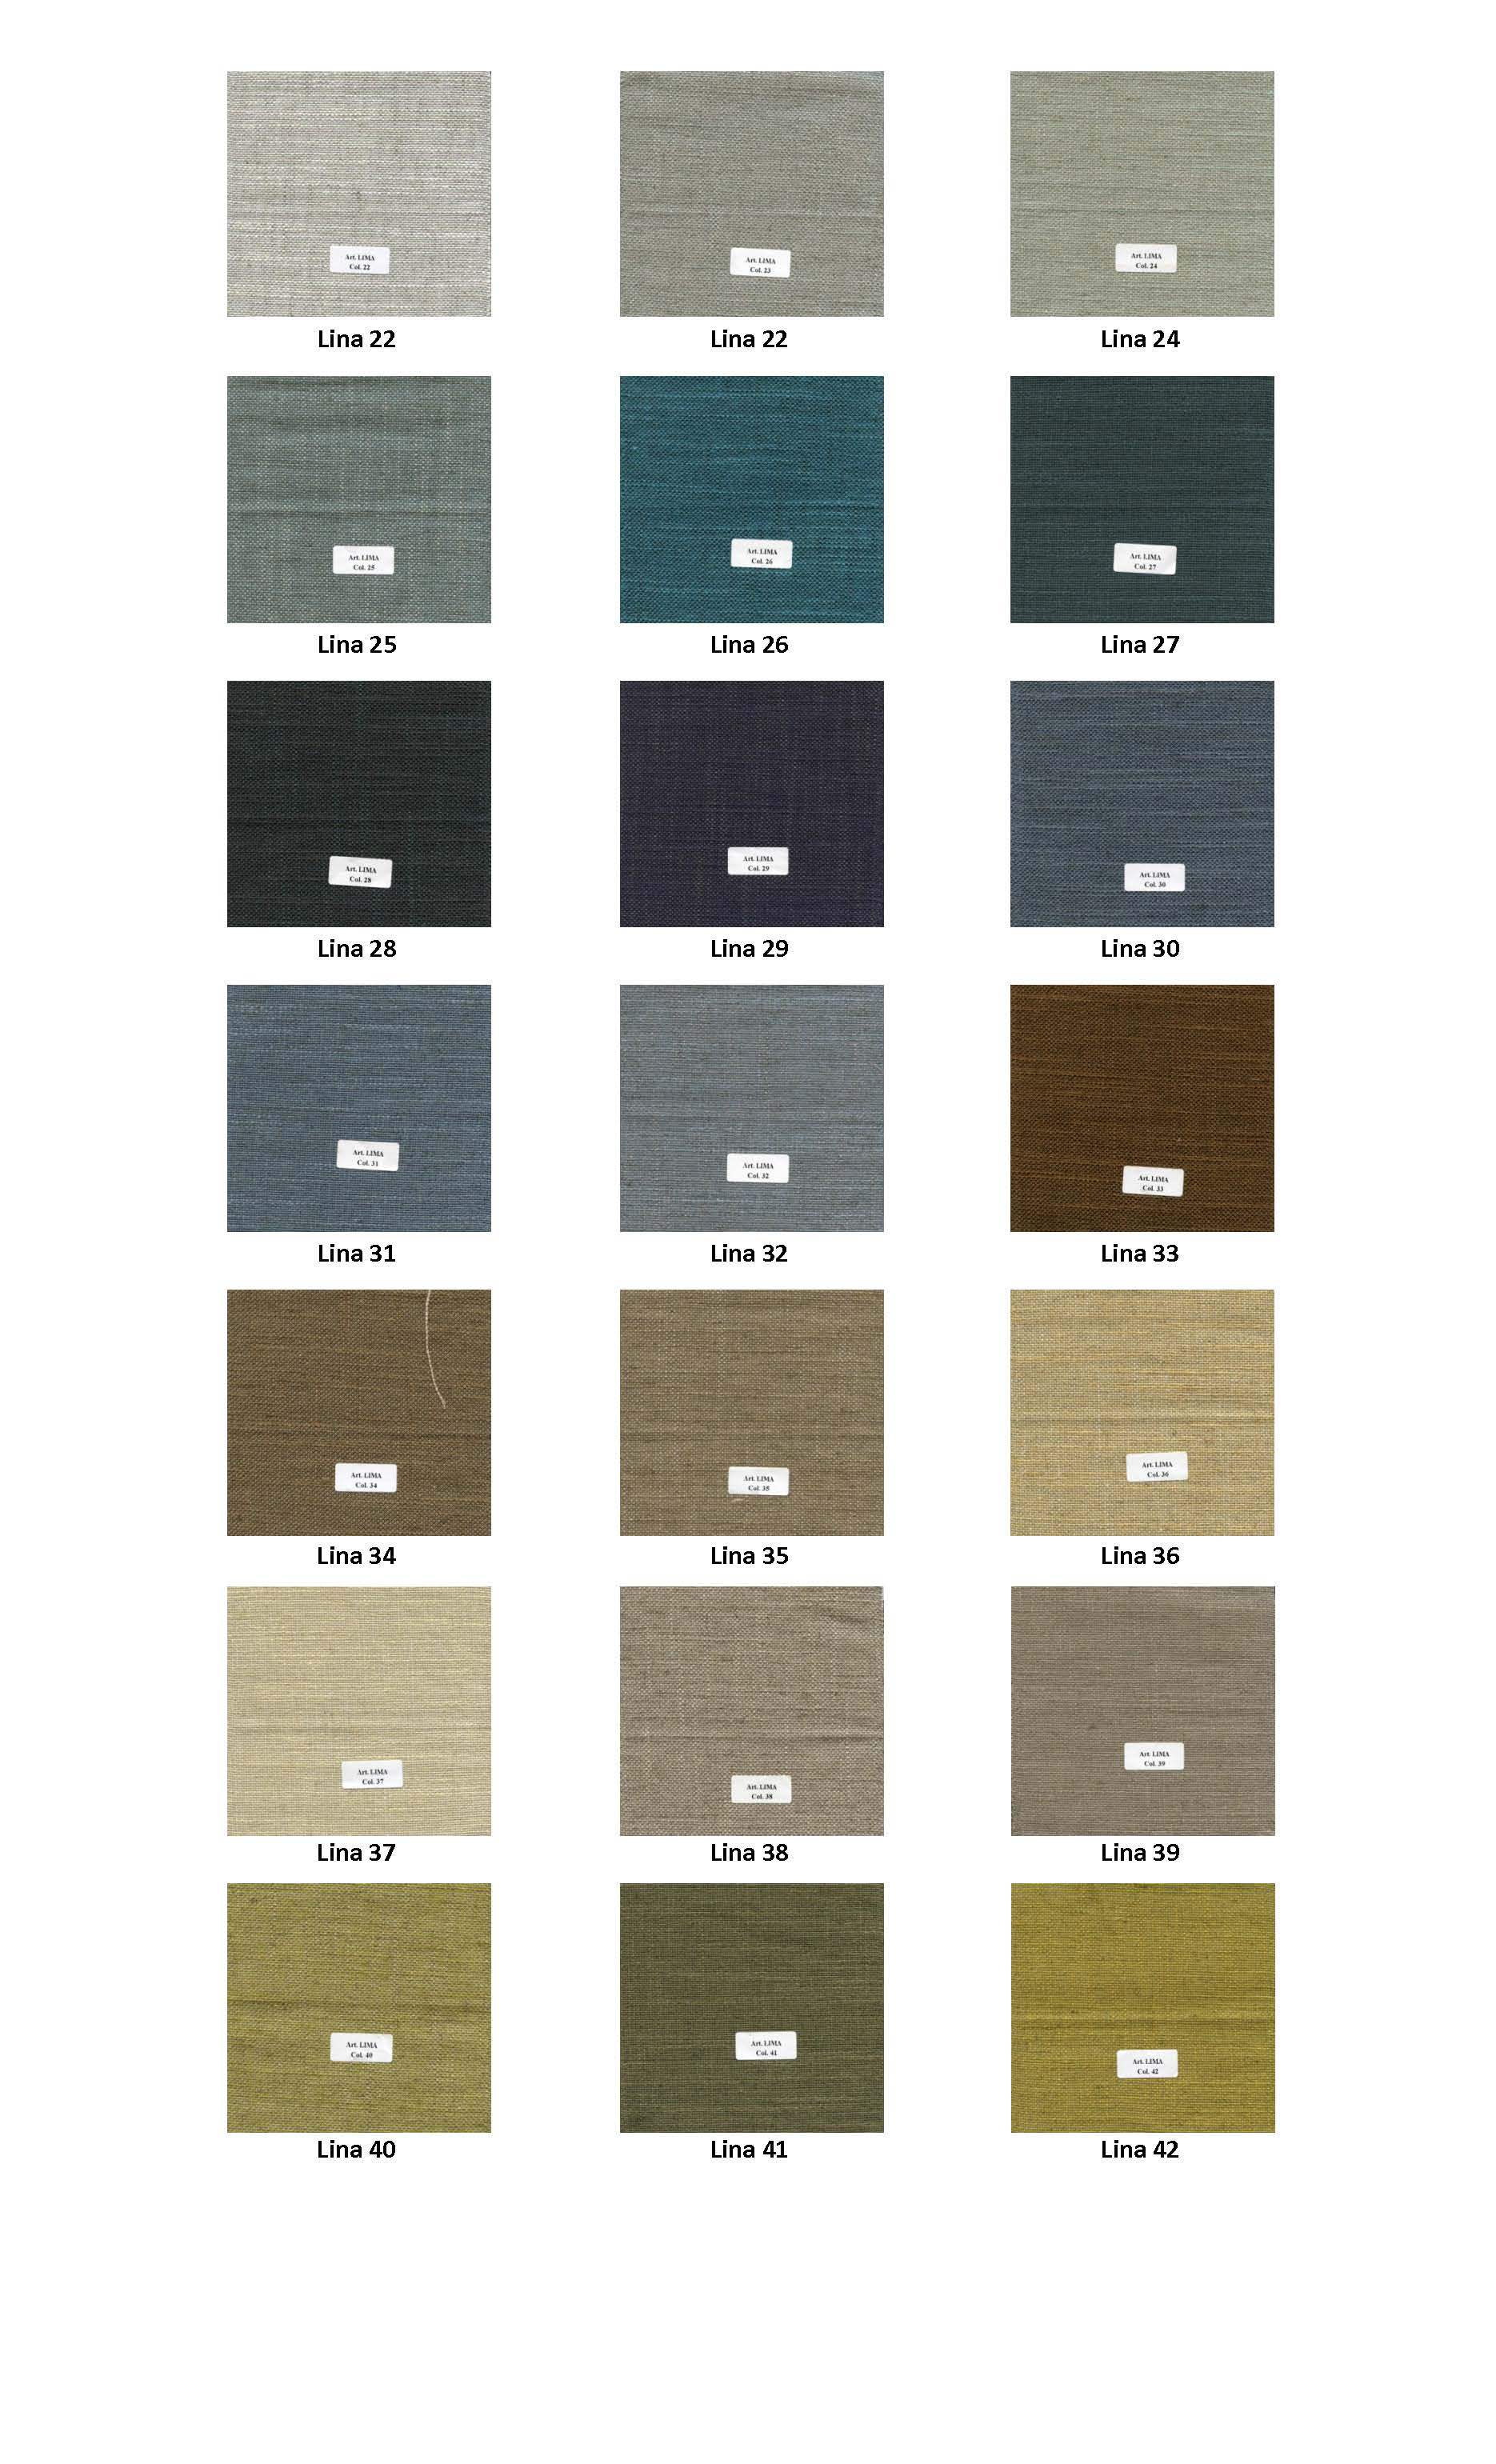 Sofa Fabric Samples Camelgroup Swatches Swatches Living Room Furniture